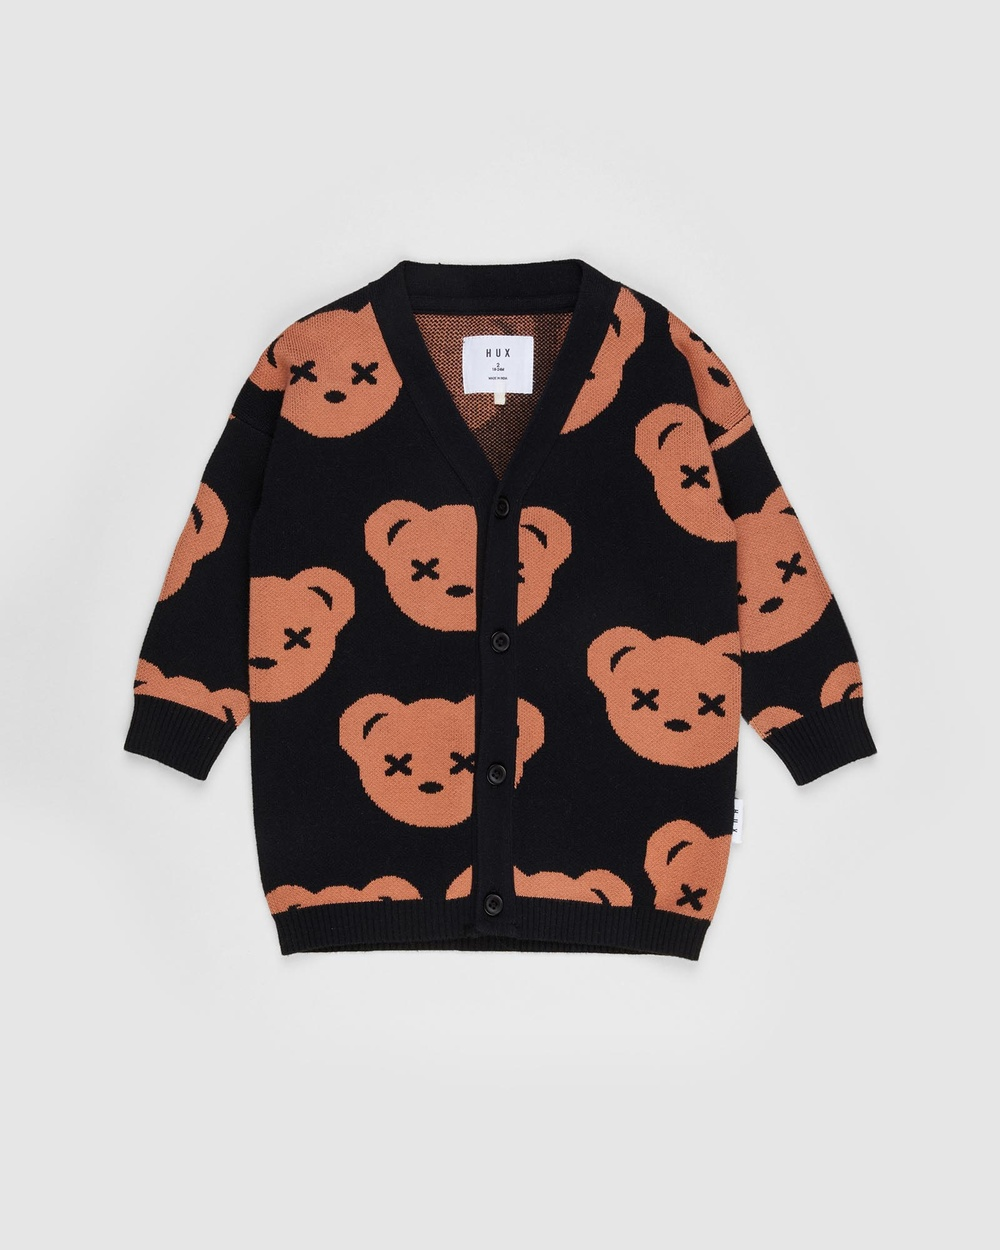 Huxbaby ICONIC EXCLUSIVE Knit Cardi Babies Kids Jumpers & Cardigans Black Babies-Kids